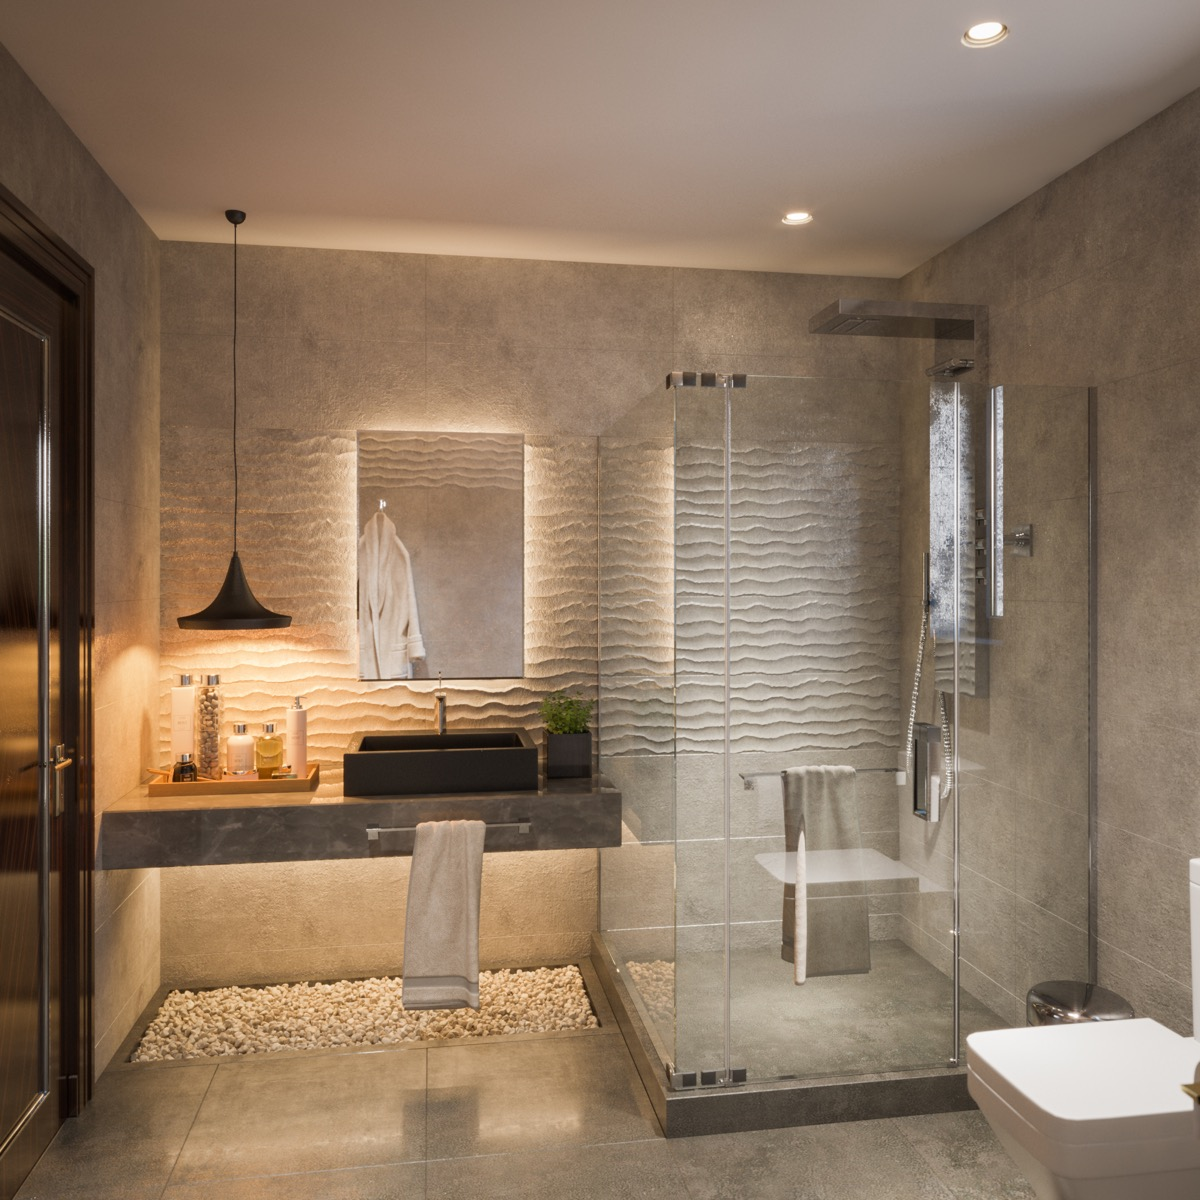 . 51 Modern Bathroom Design Ideas Plus Tips On How To Accessorize Yours